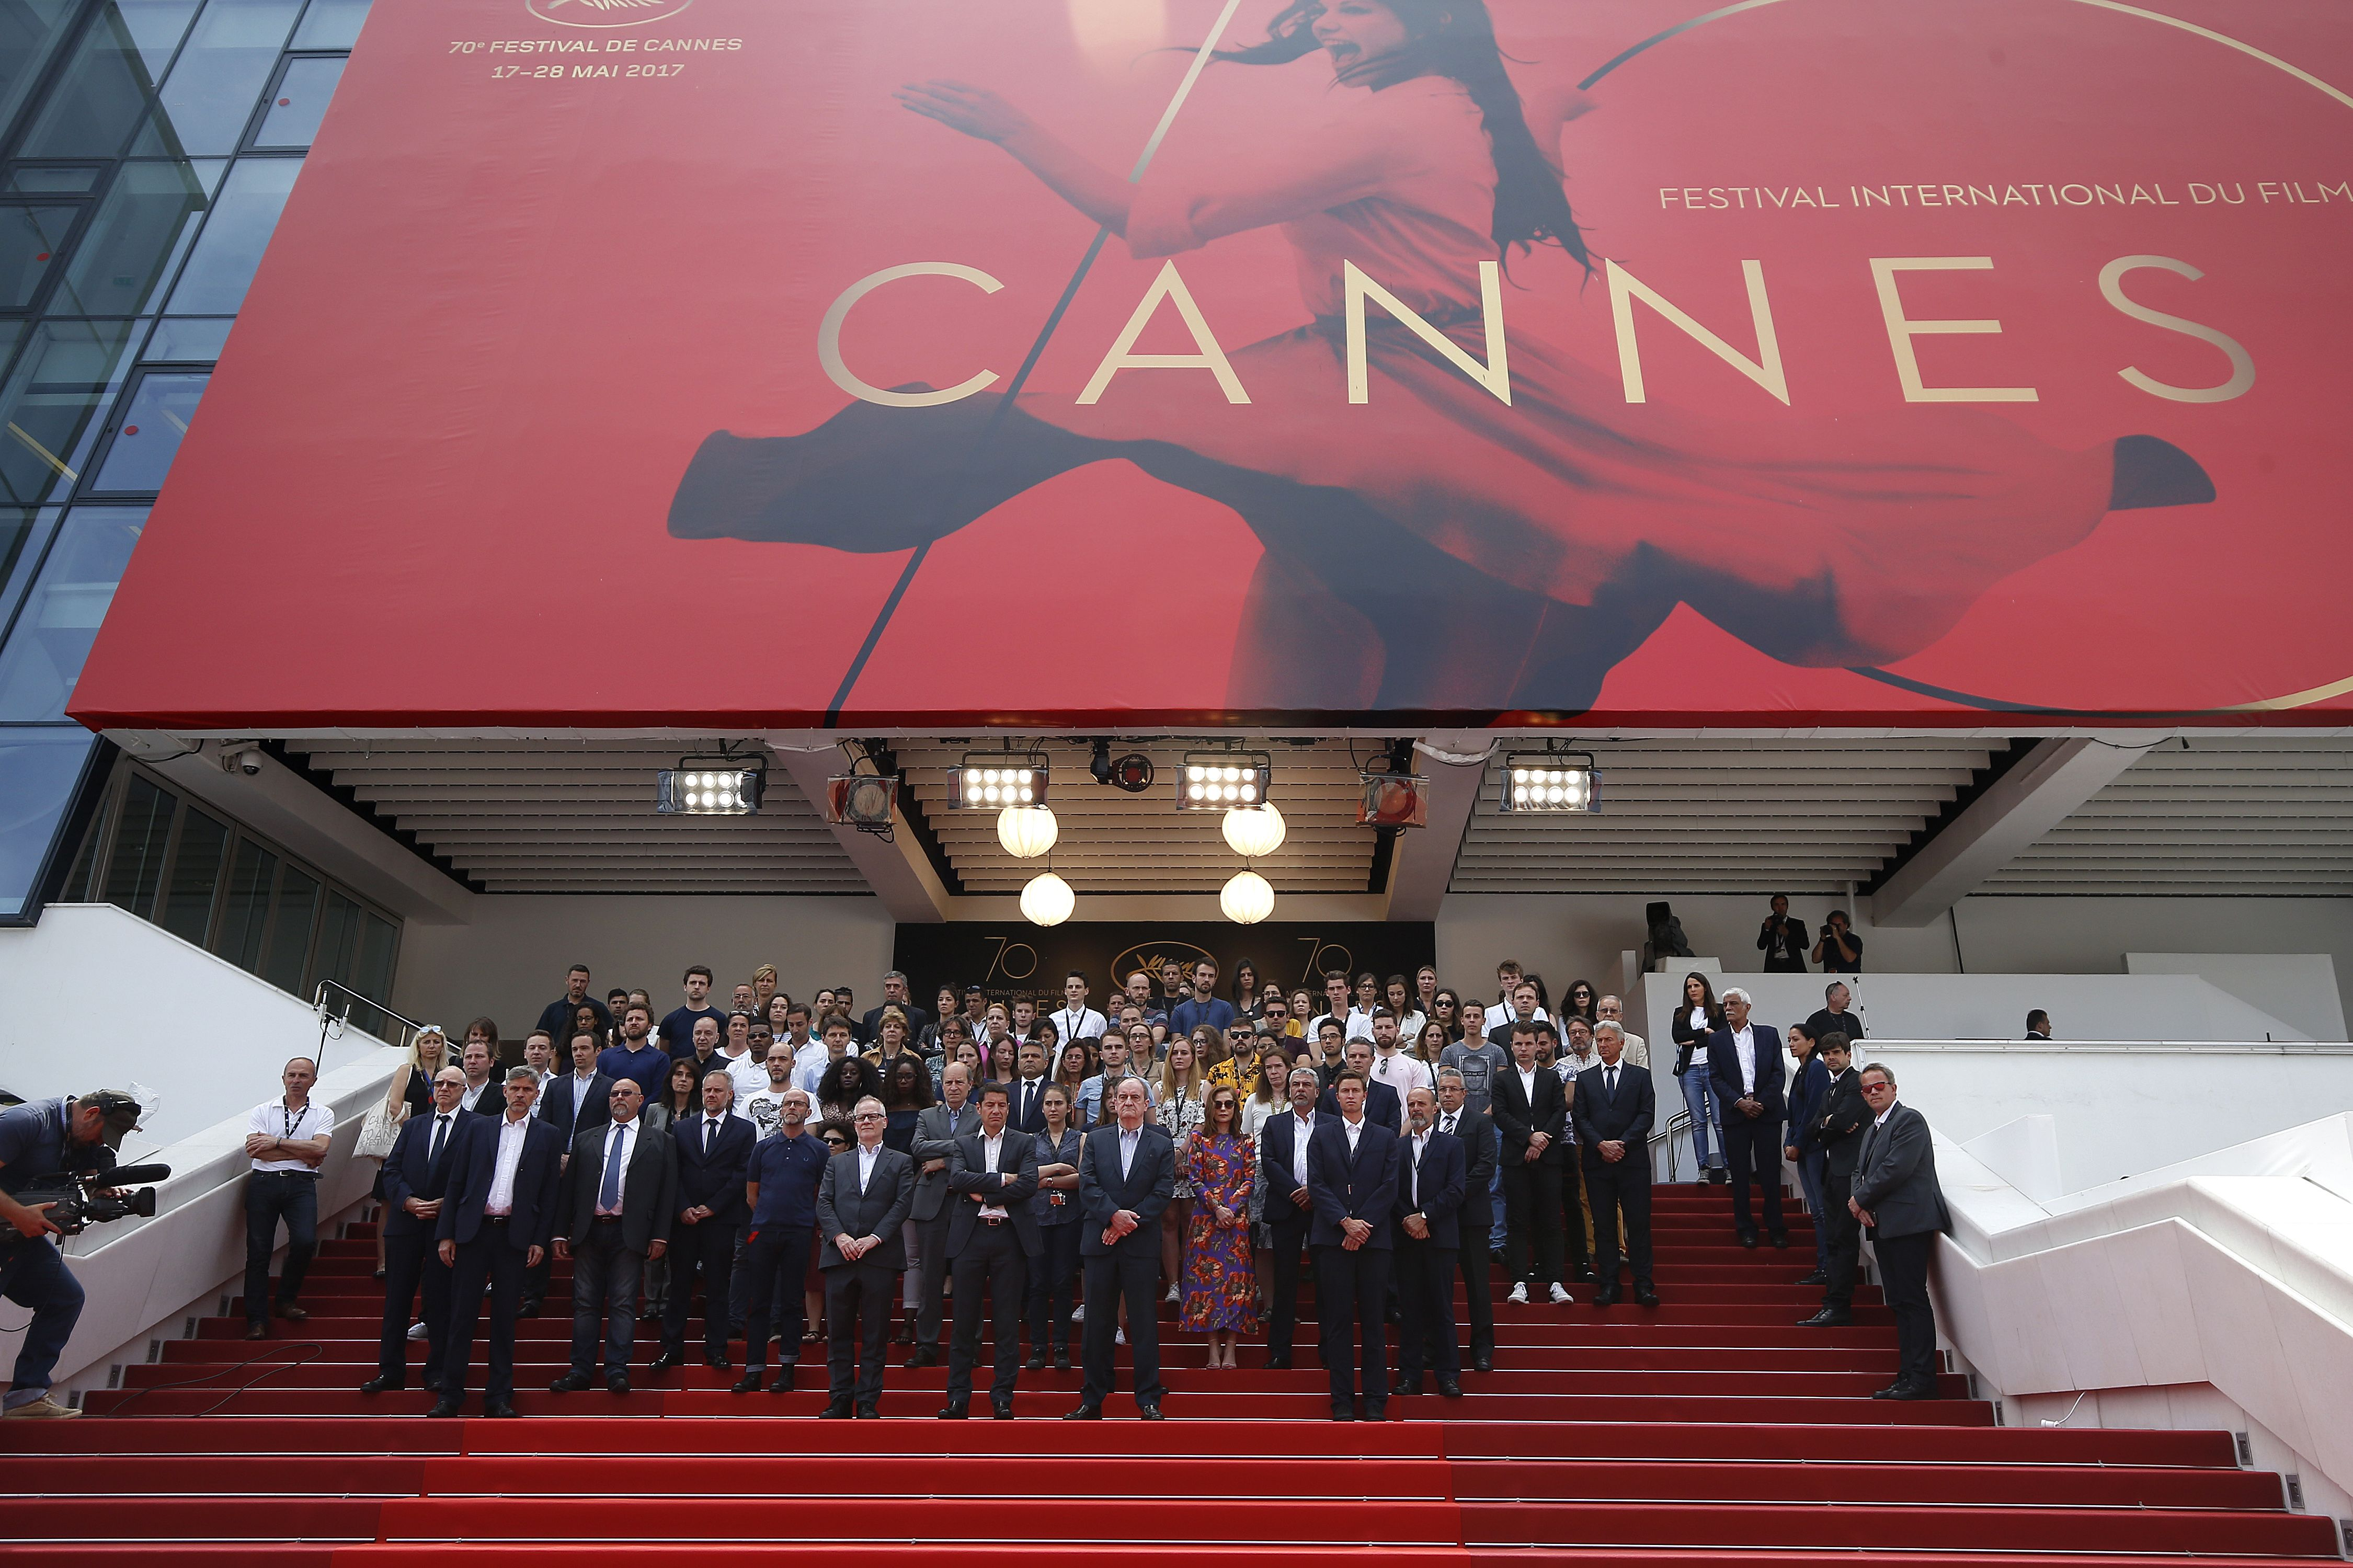 filmmakers respond to cannes ban on netflix films from